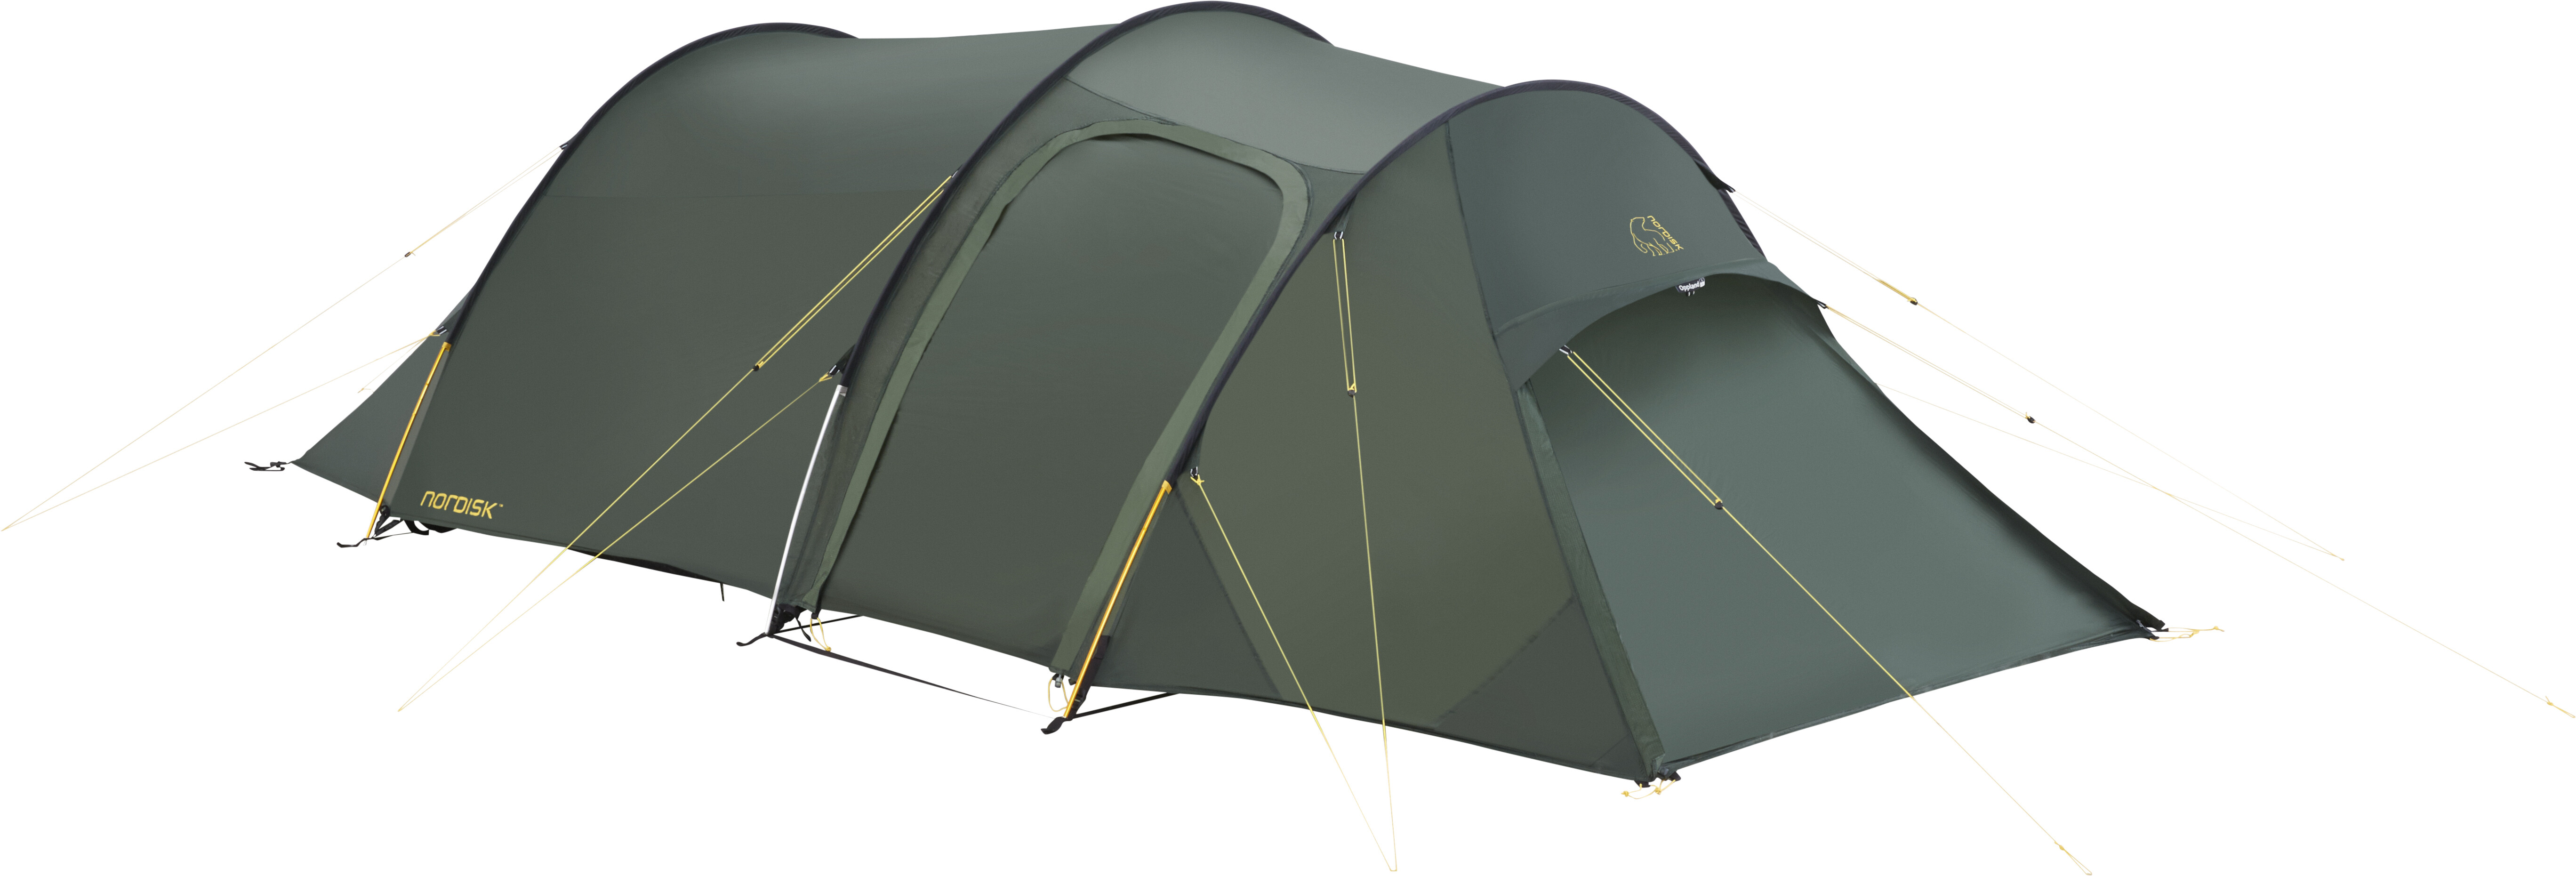 bcbbc2edb80766 Nordisk Oppland 3 SI Tent green at Addnature.co.uk